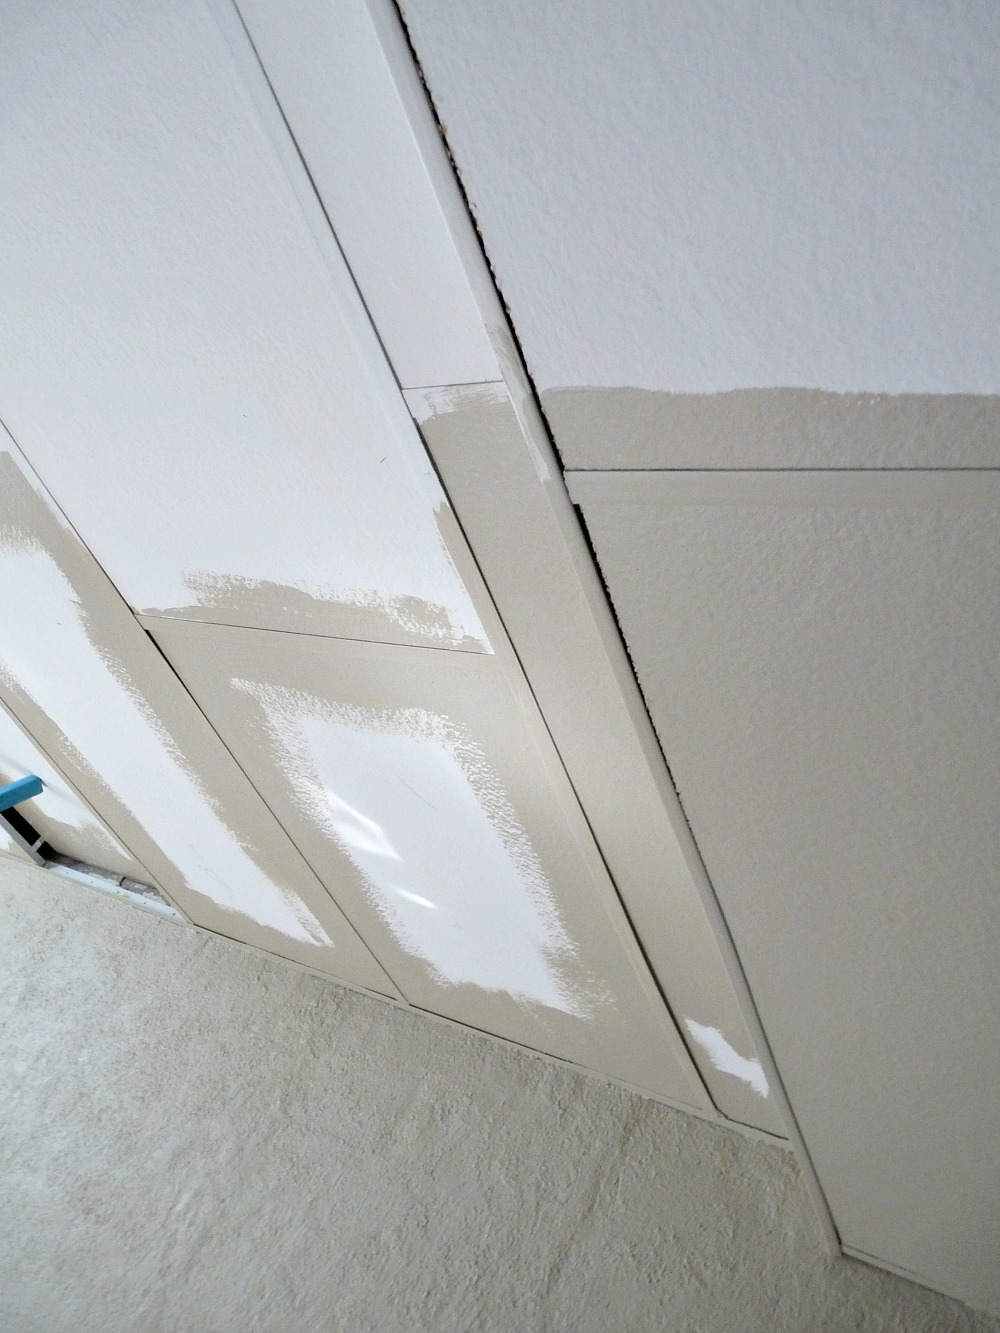 Basement update how to paint drop ceilings you cannot remove cannot remove ceiling tiles heres how to paint them painted drop ceiling dailygadgetfo Image collections